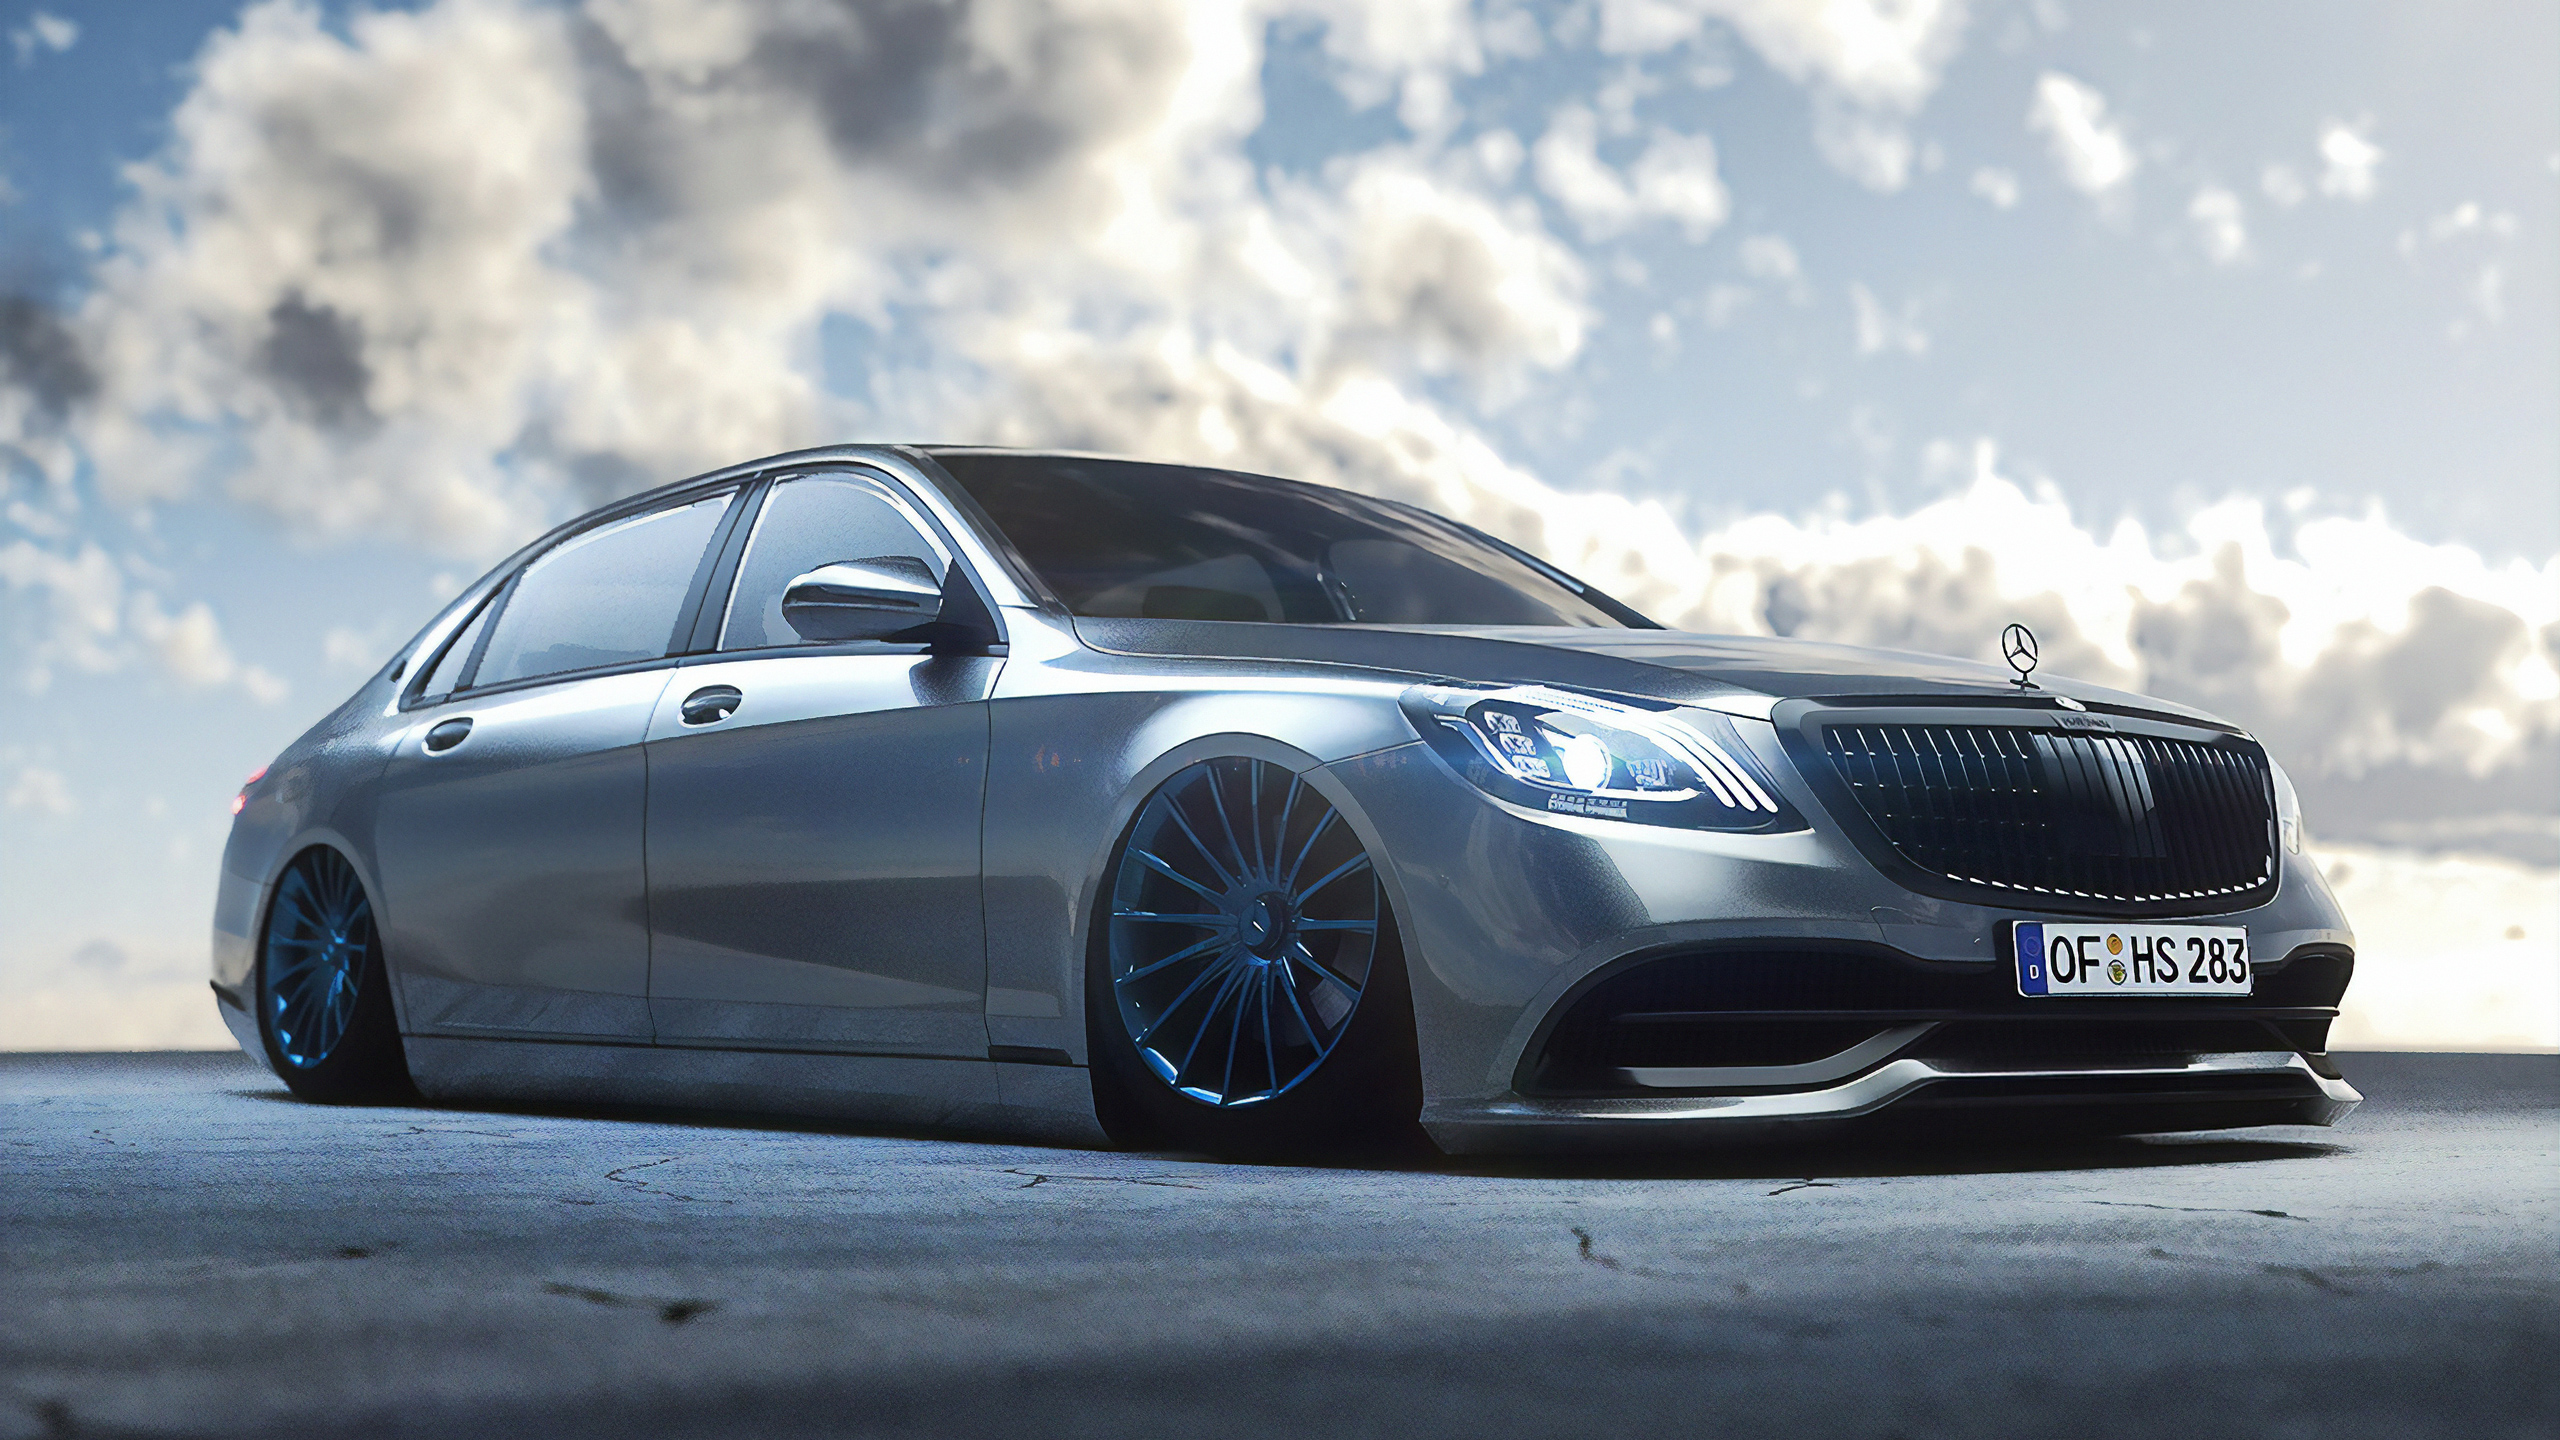 Mercedes S Class New Hd Cars 4k Wallpapers Images